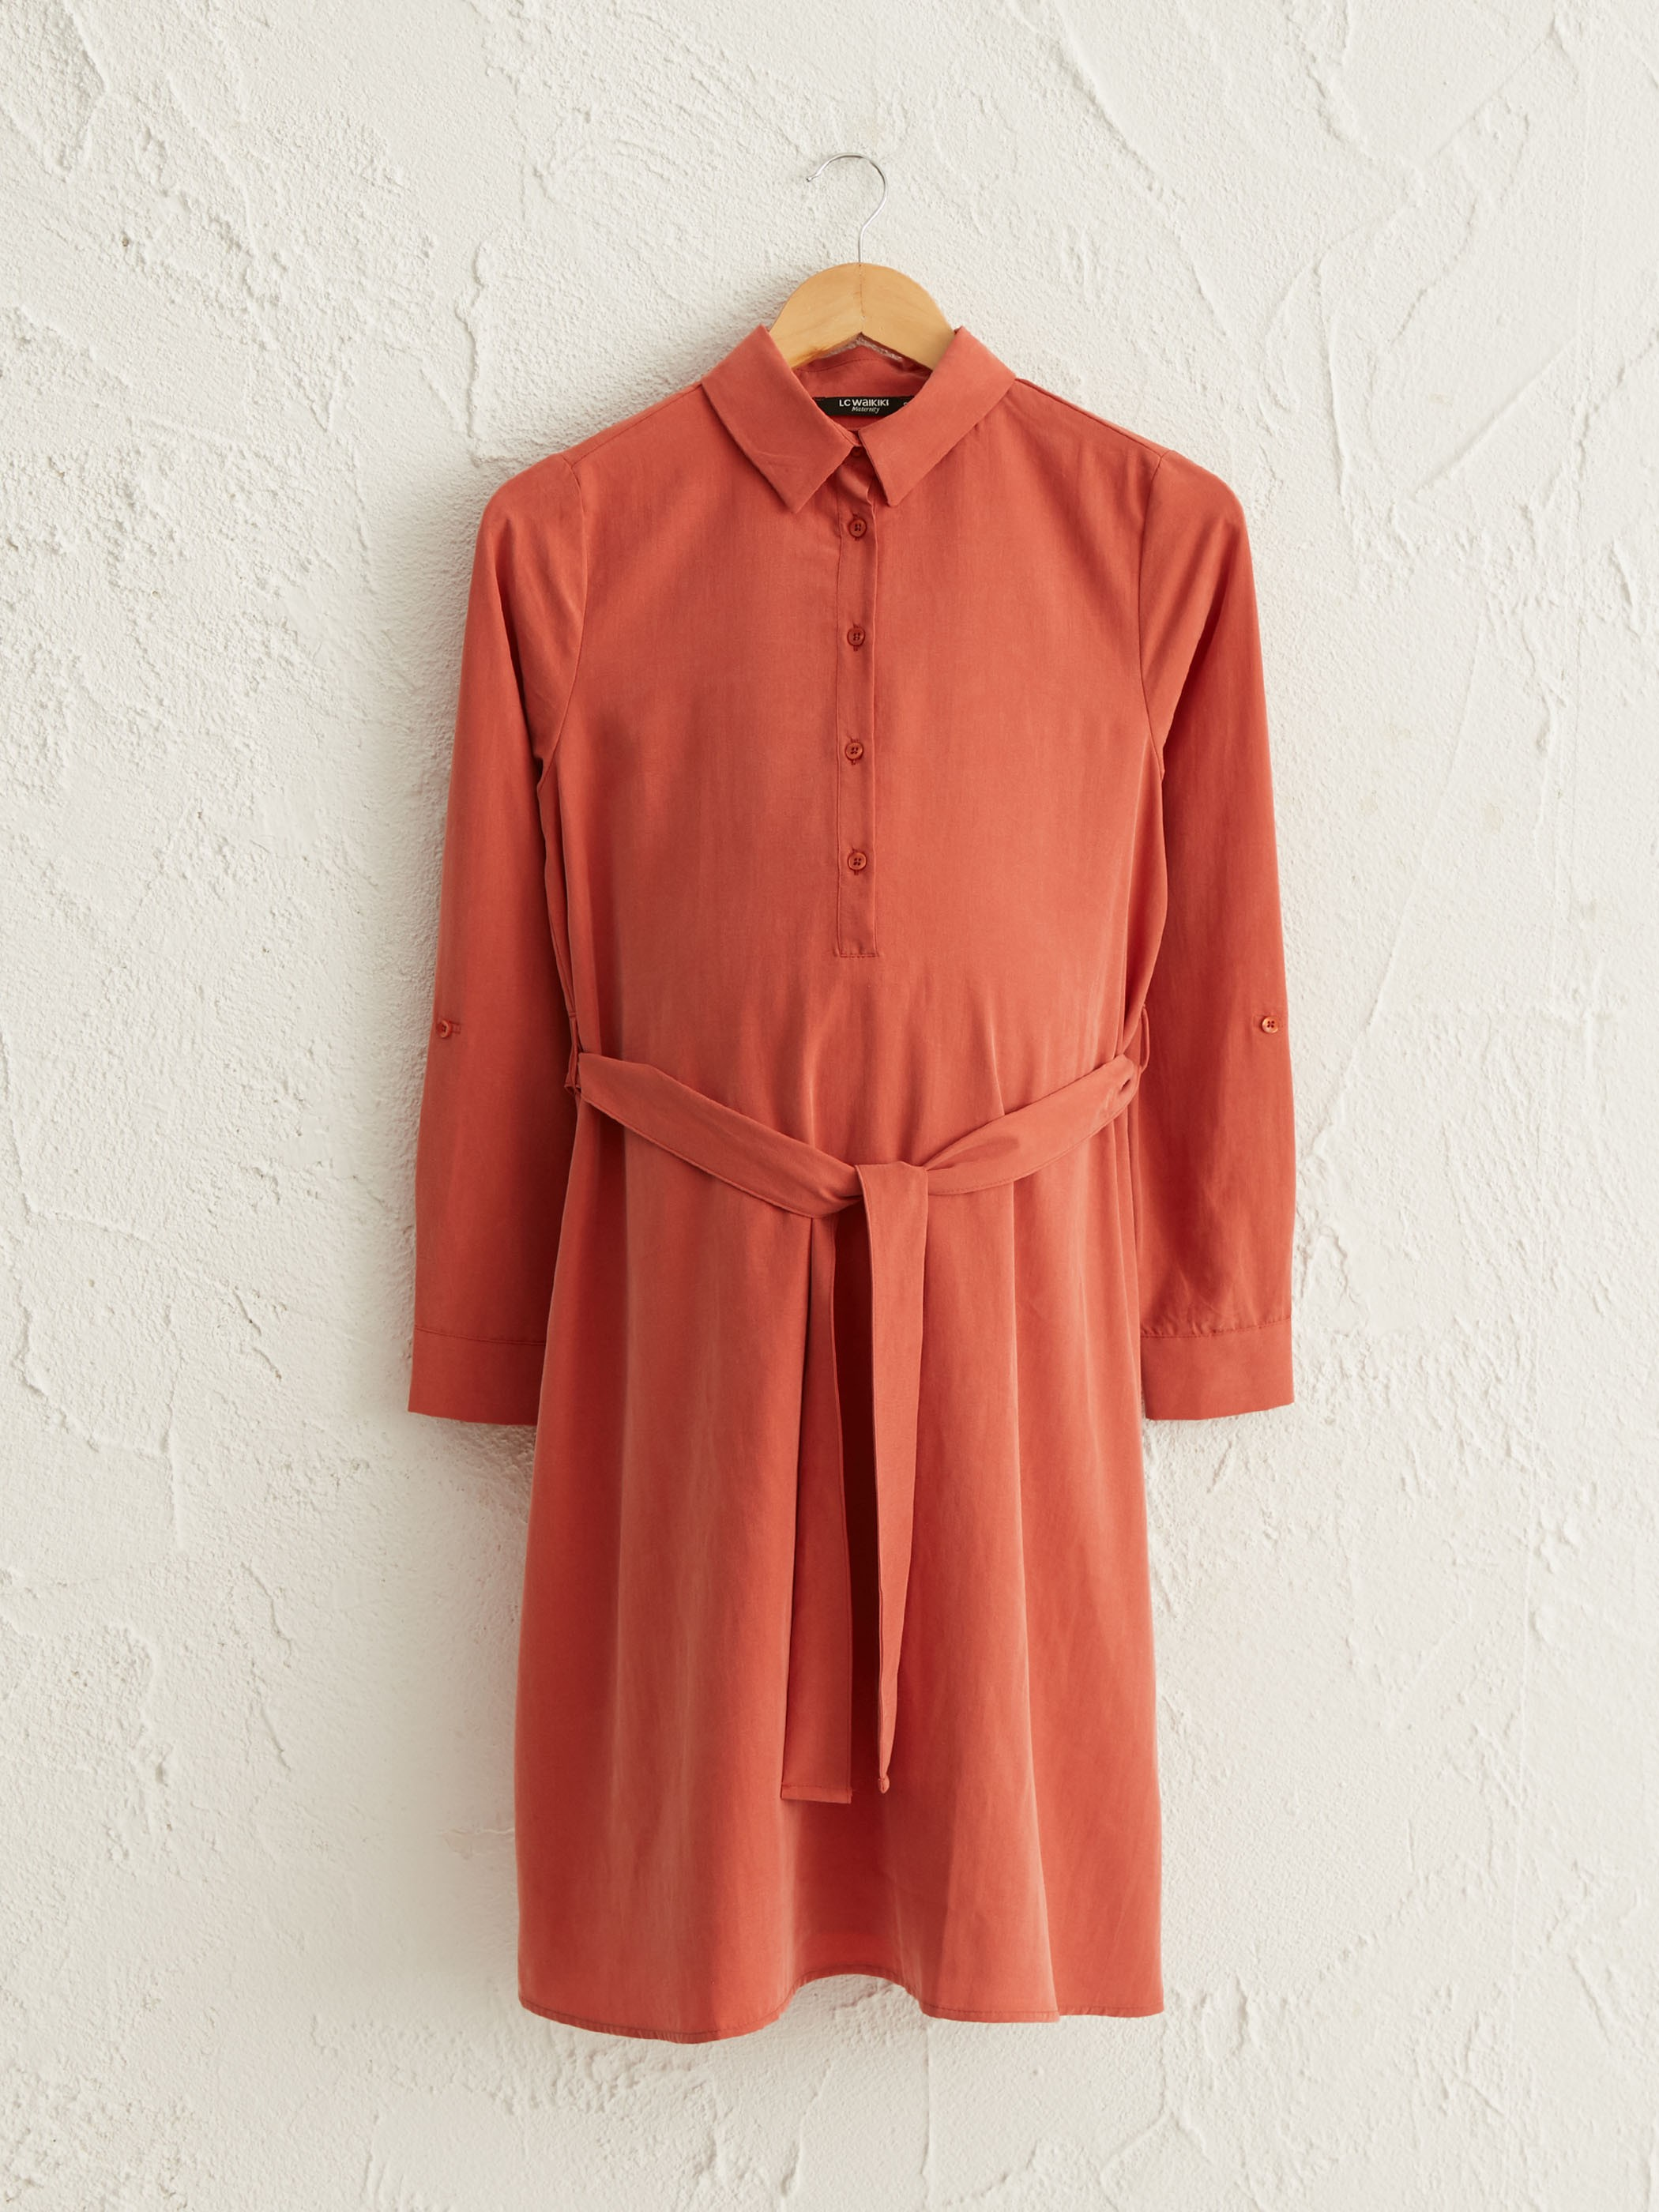 CORAL - Textured Fabric Belted Maternity Dress - 0WCJ03Z8